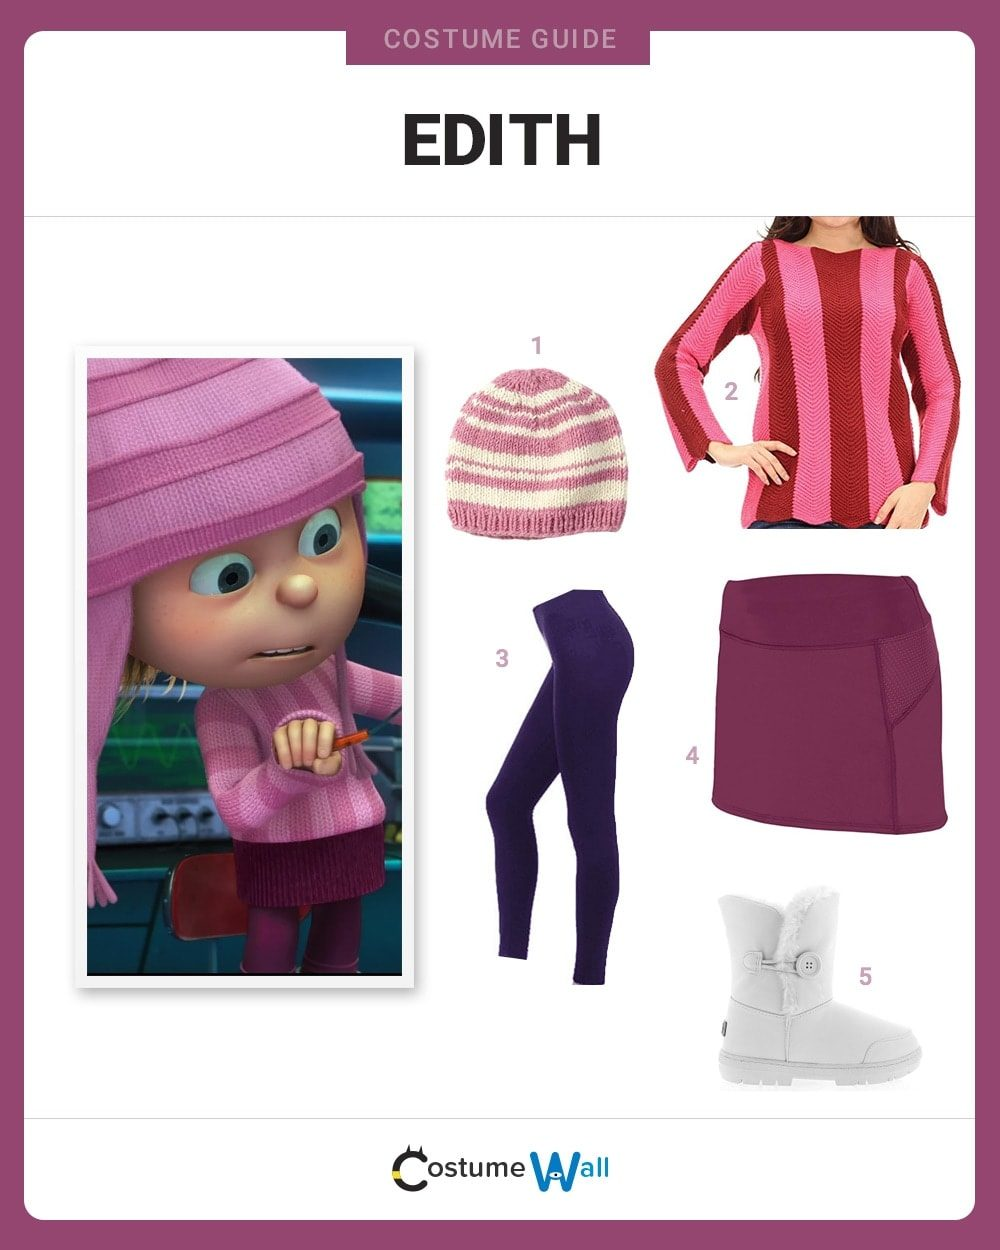 Costume Breakdown  sc 1 st  Costume Wall & Dress Like Edith Gru Costume | Halloween and Cosplay Guides